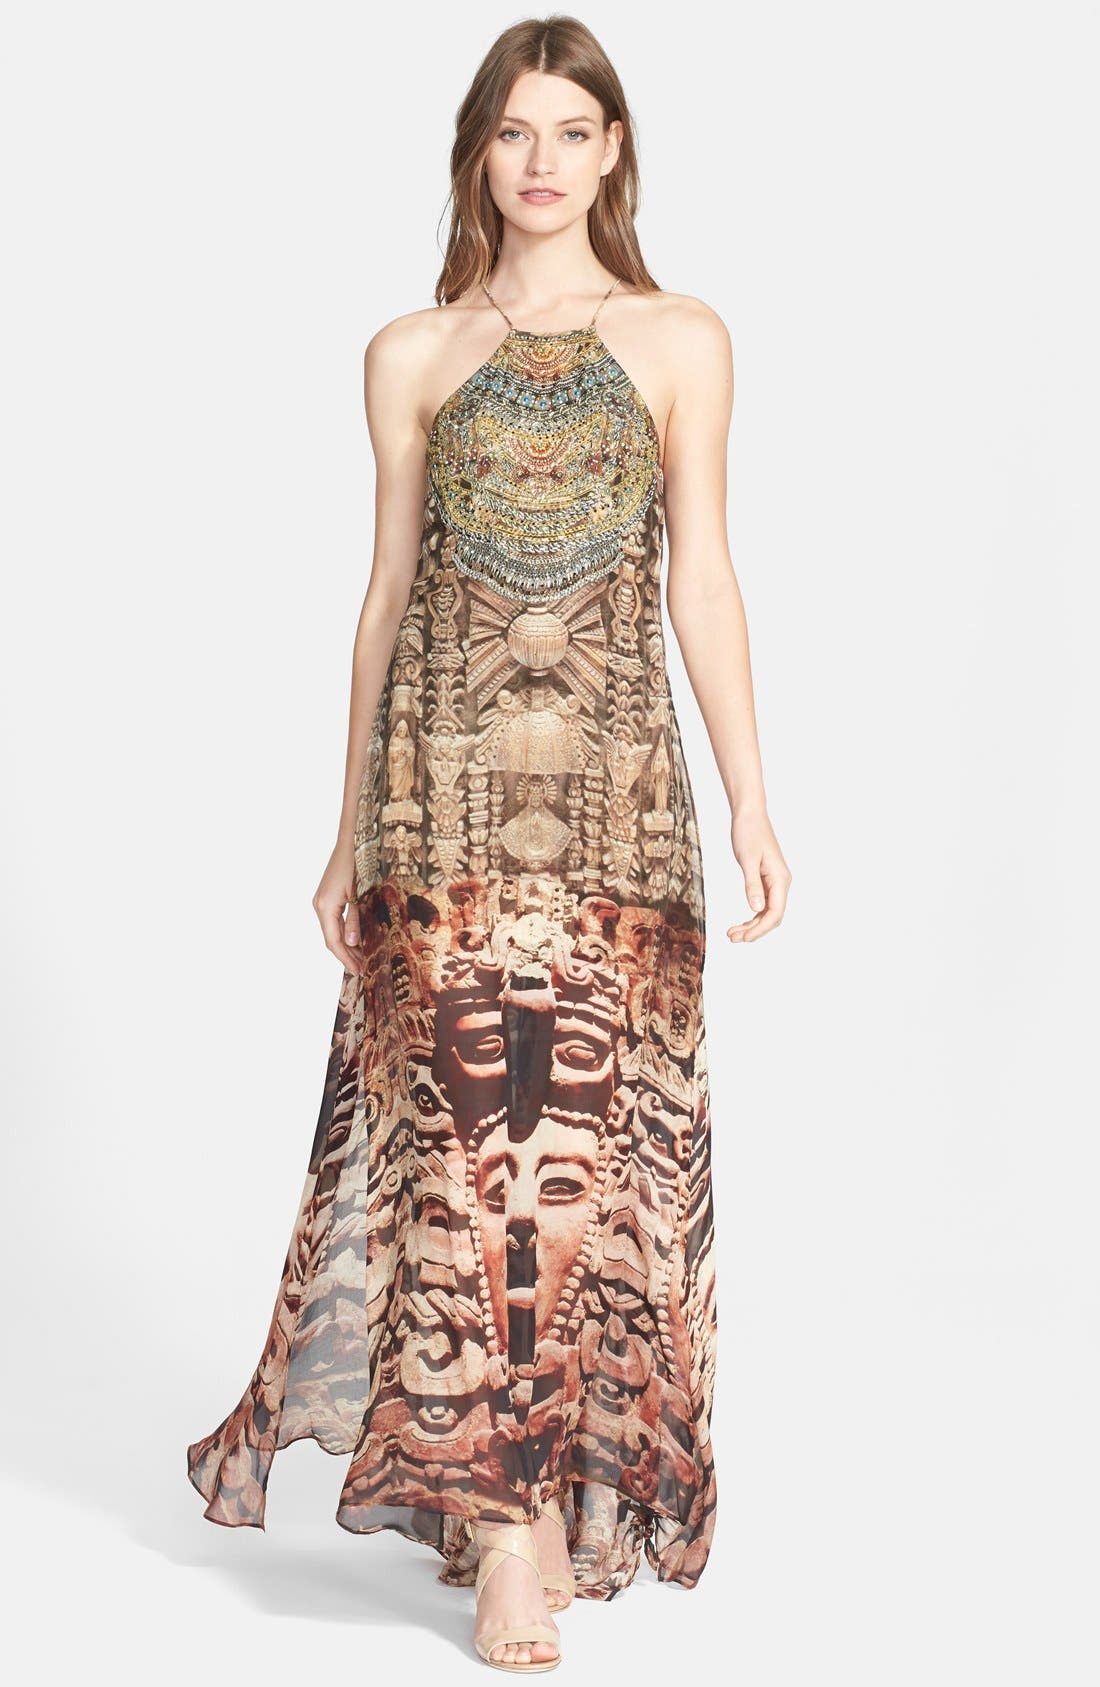 Main Image - Camilla 'Time Among the Gods' Crystal Embellished Print Silk Maxi Dress